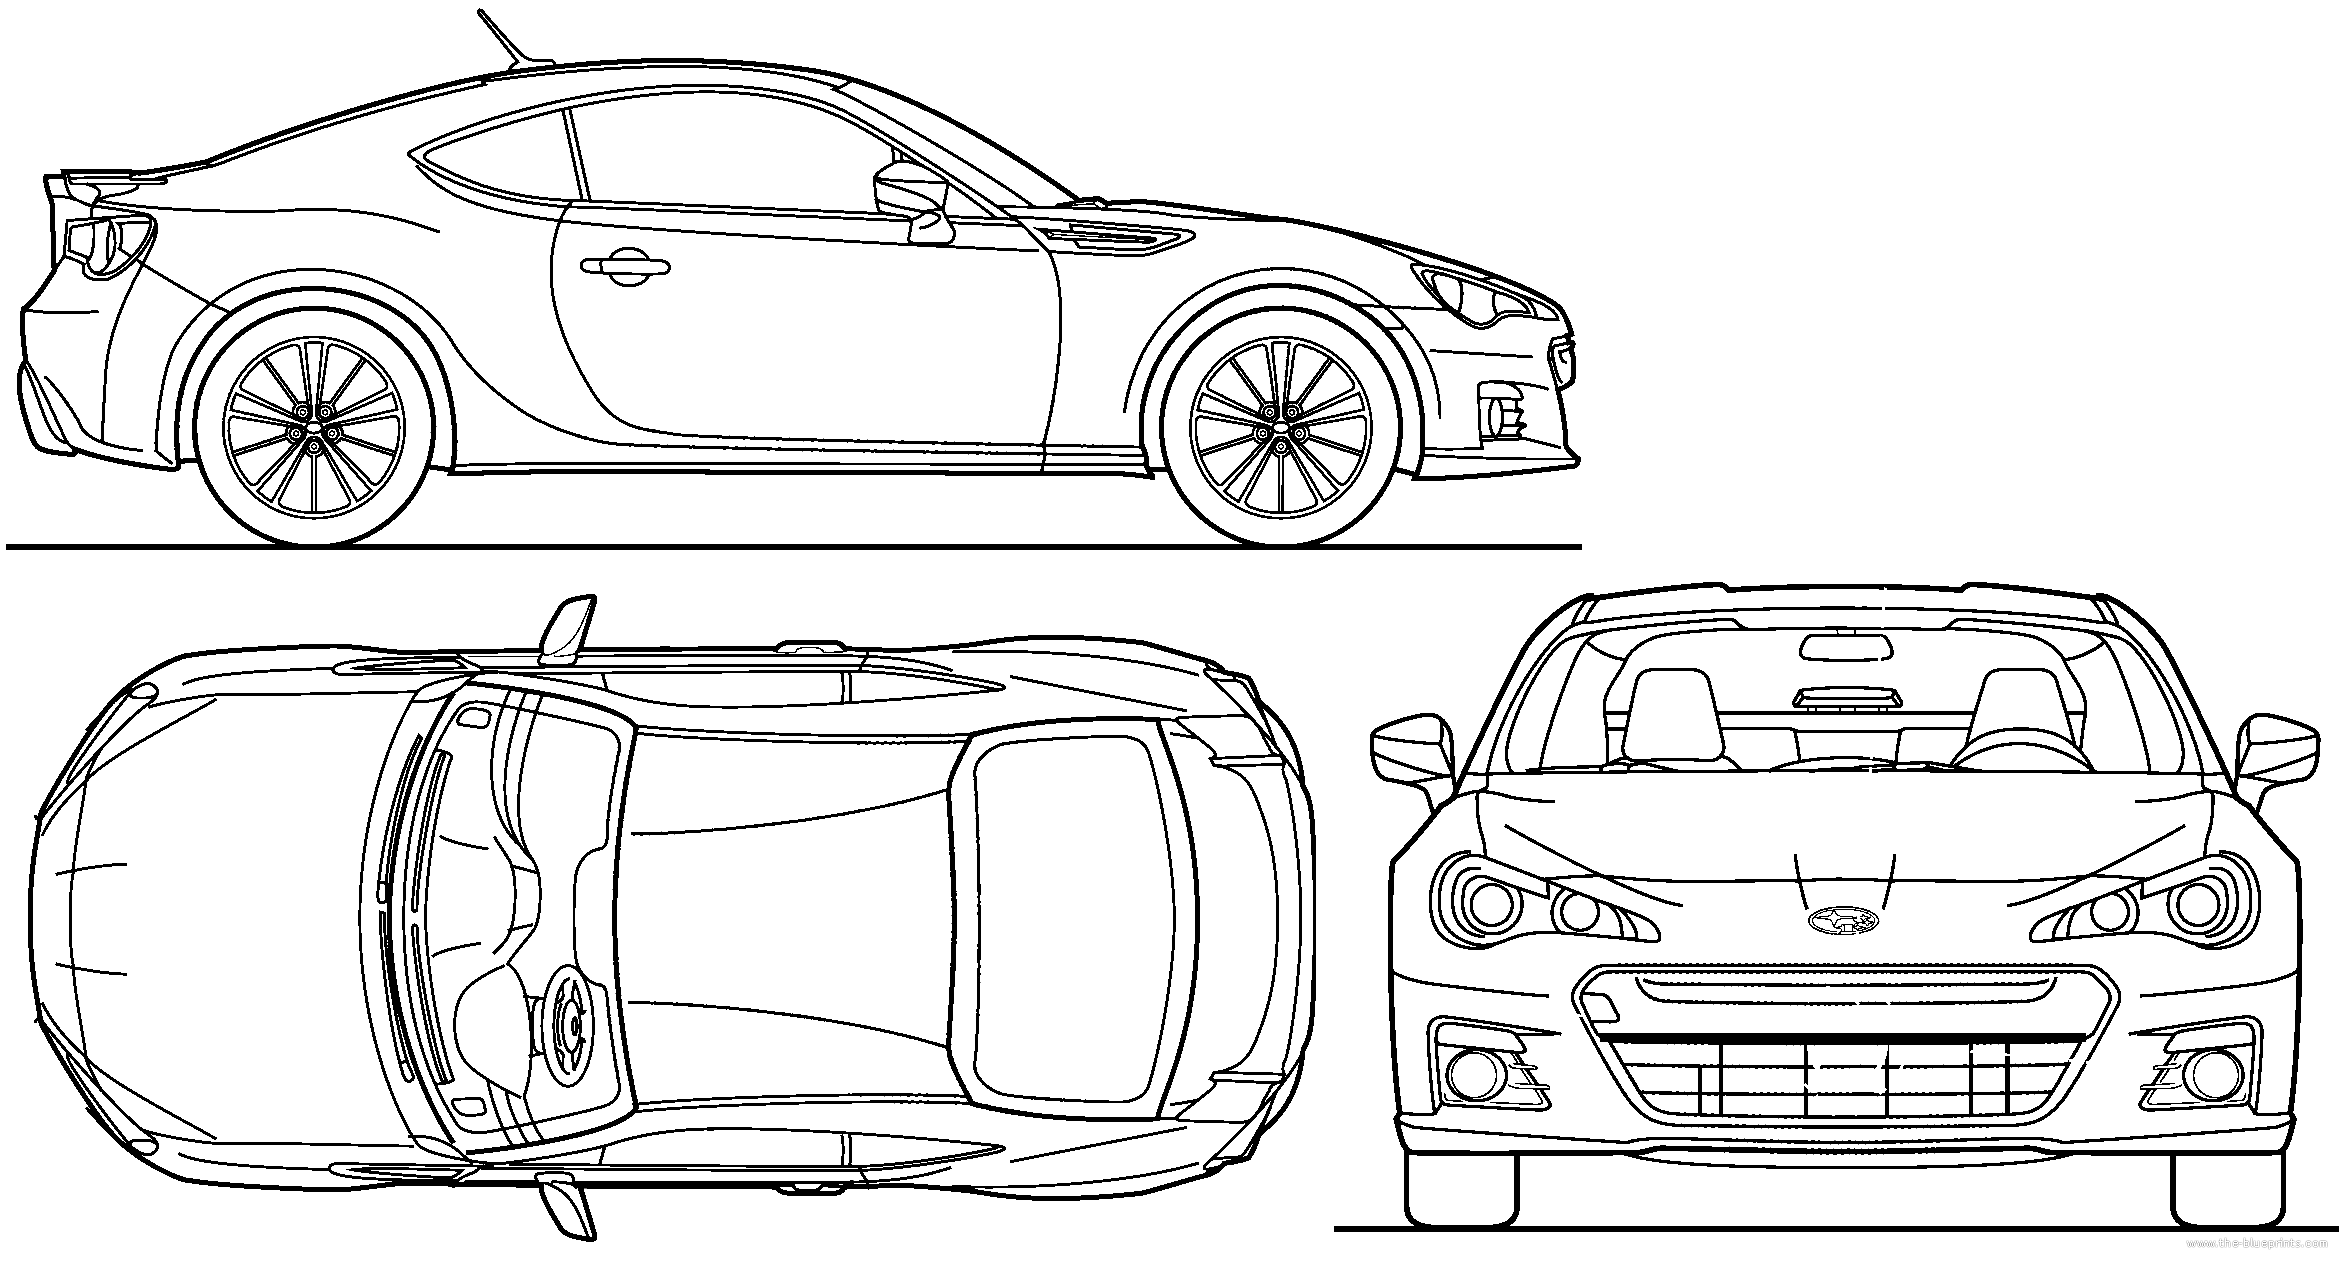 Blueprints > Cars > Subaru > Subaru BRZ (2013)